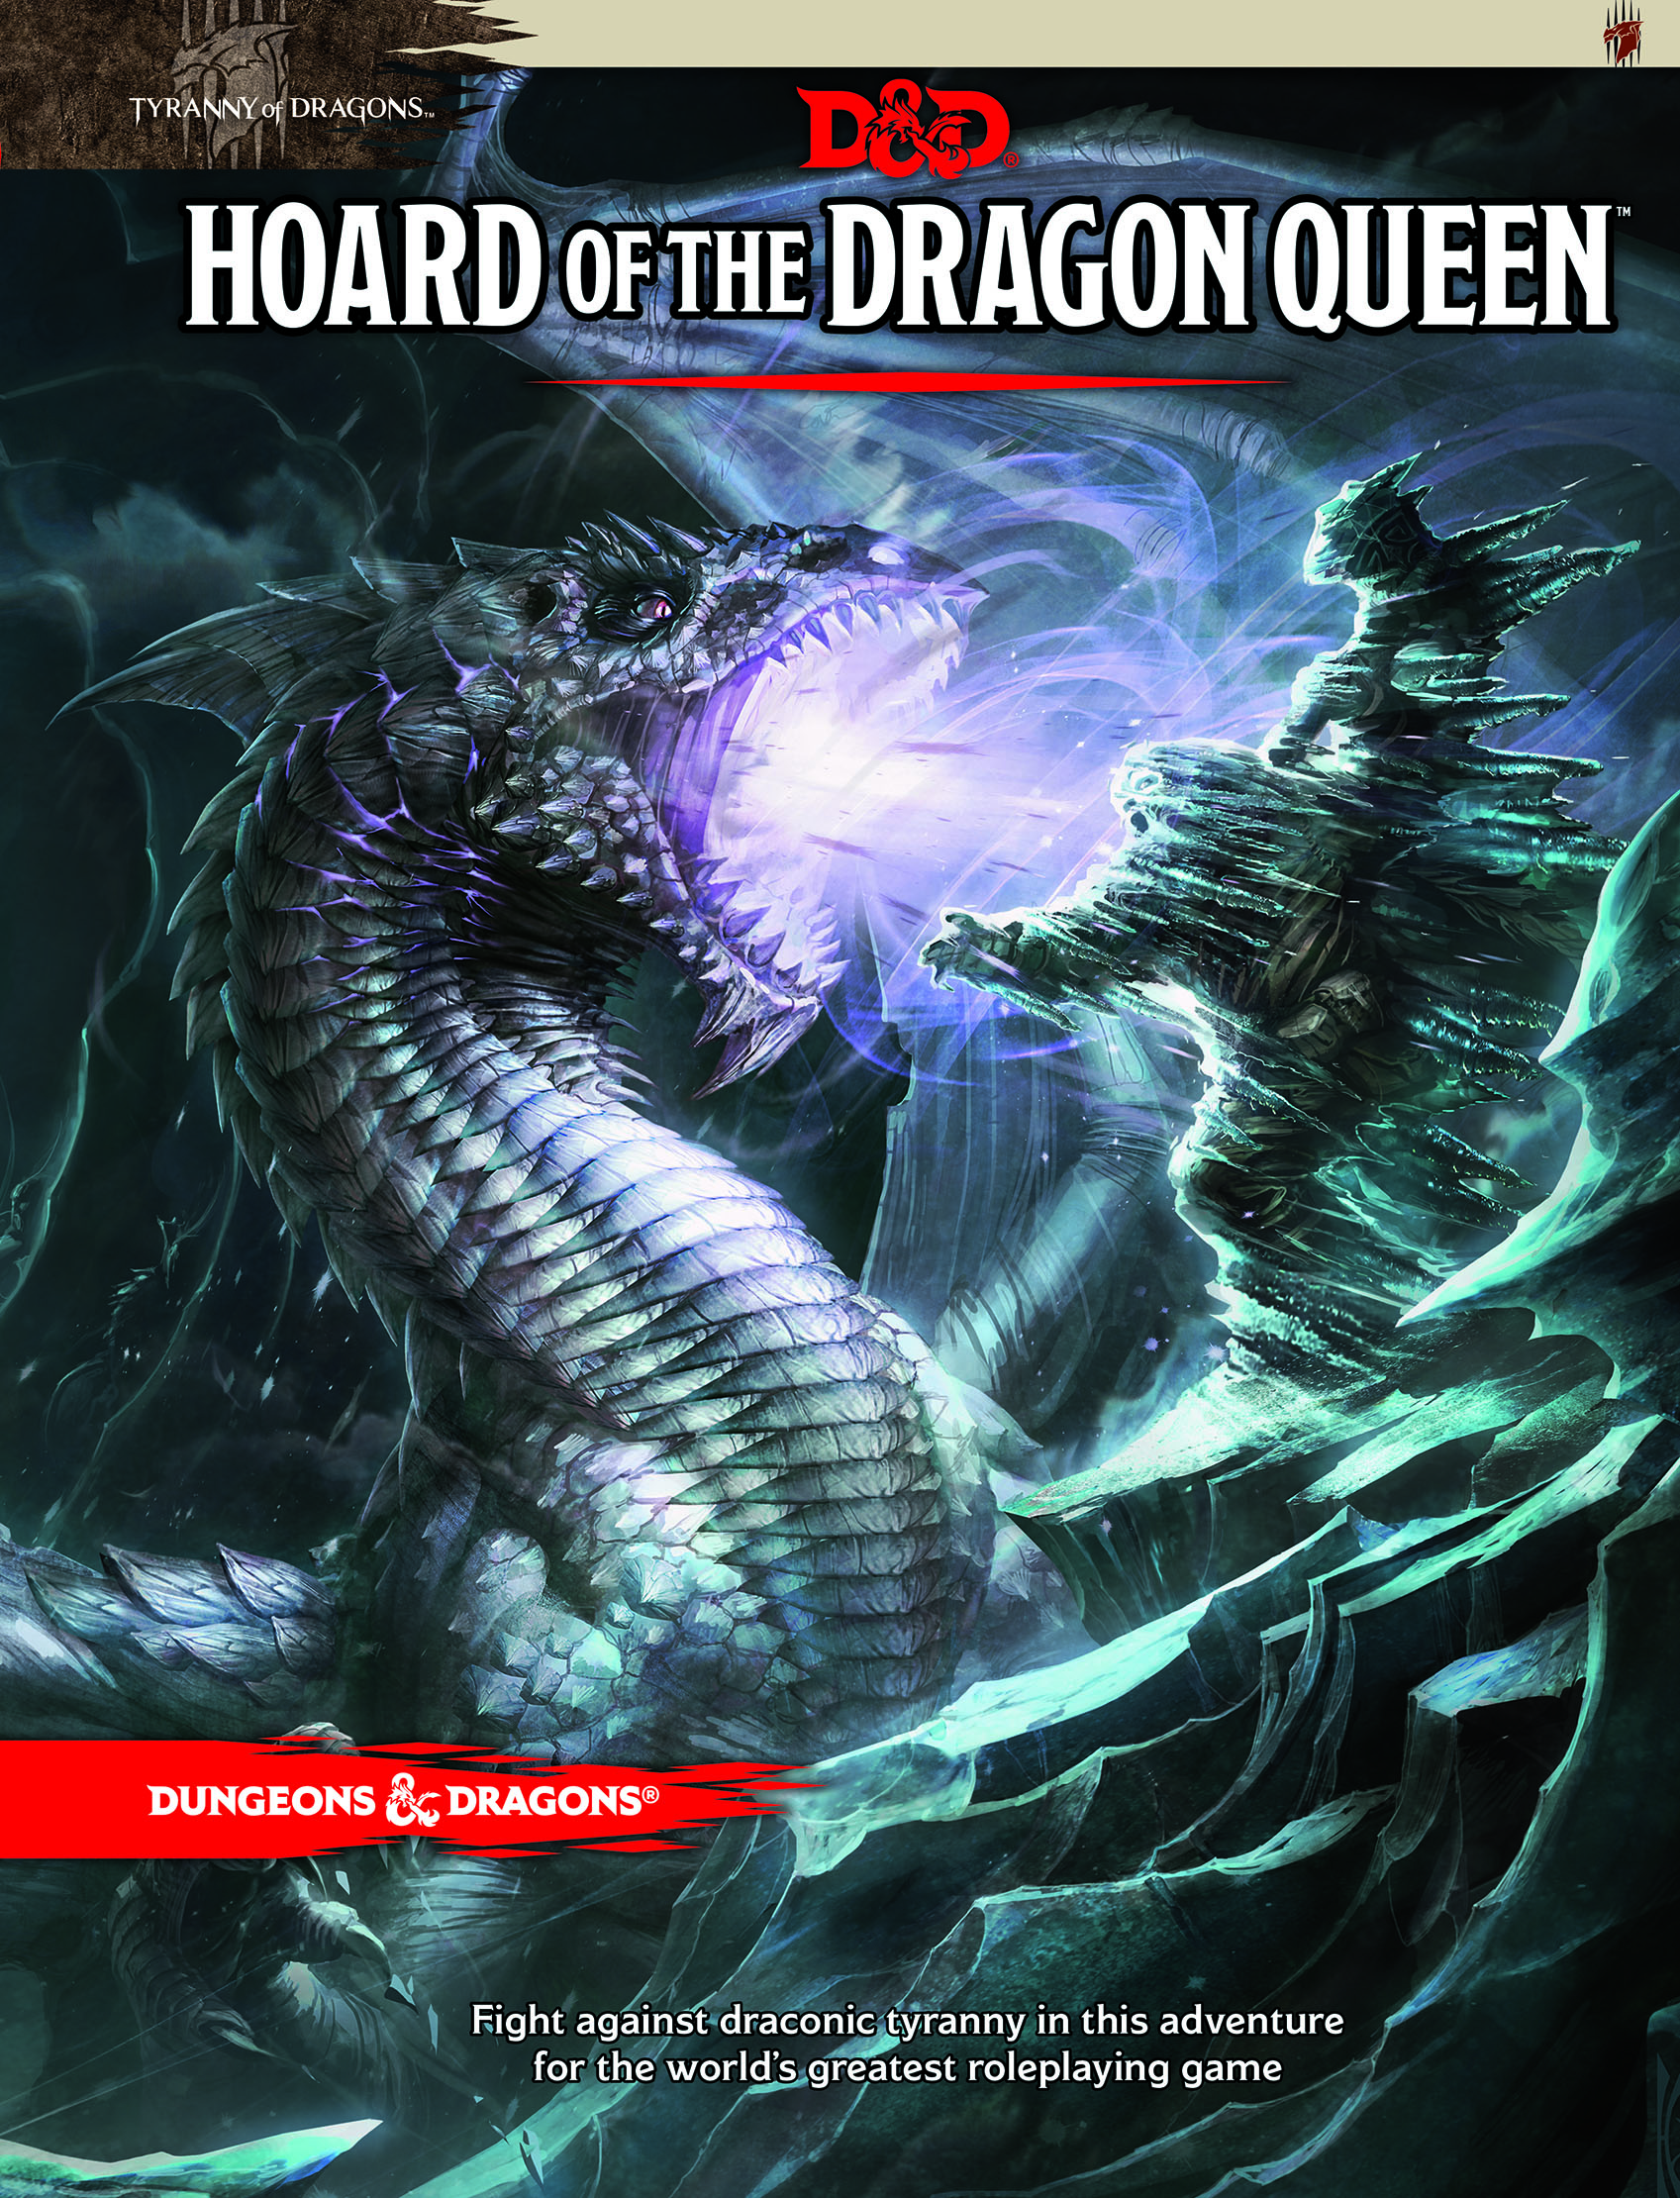 Hoard-of-the-Dragon-Queen-Cover-Art.jpg